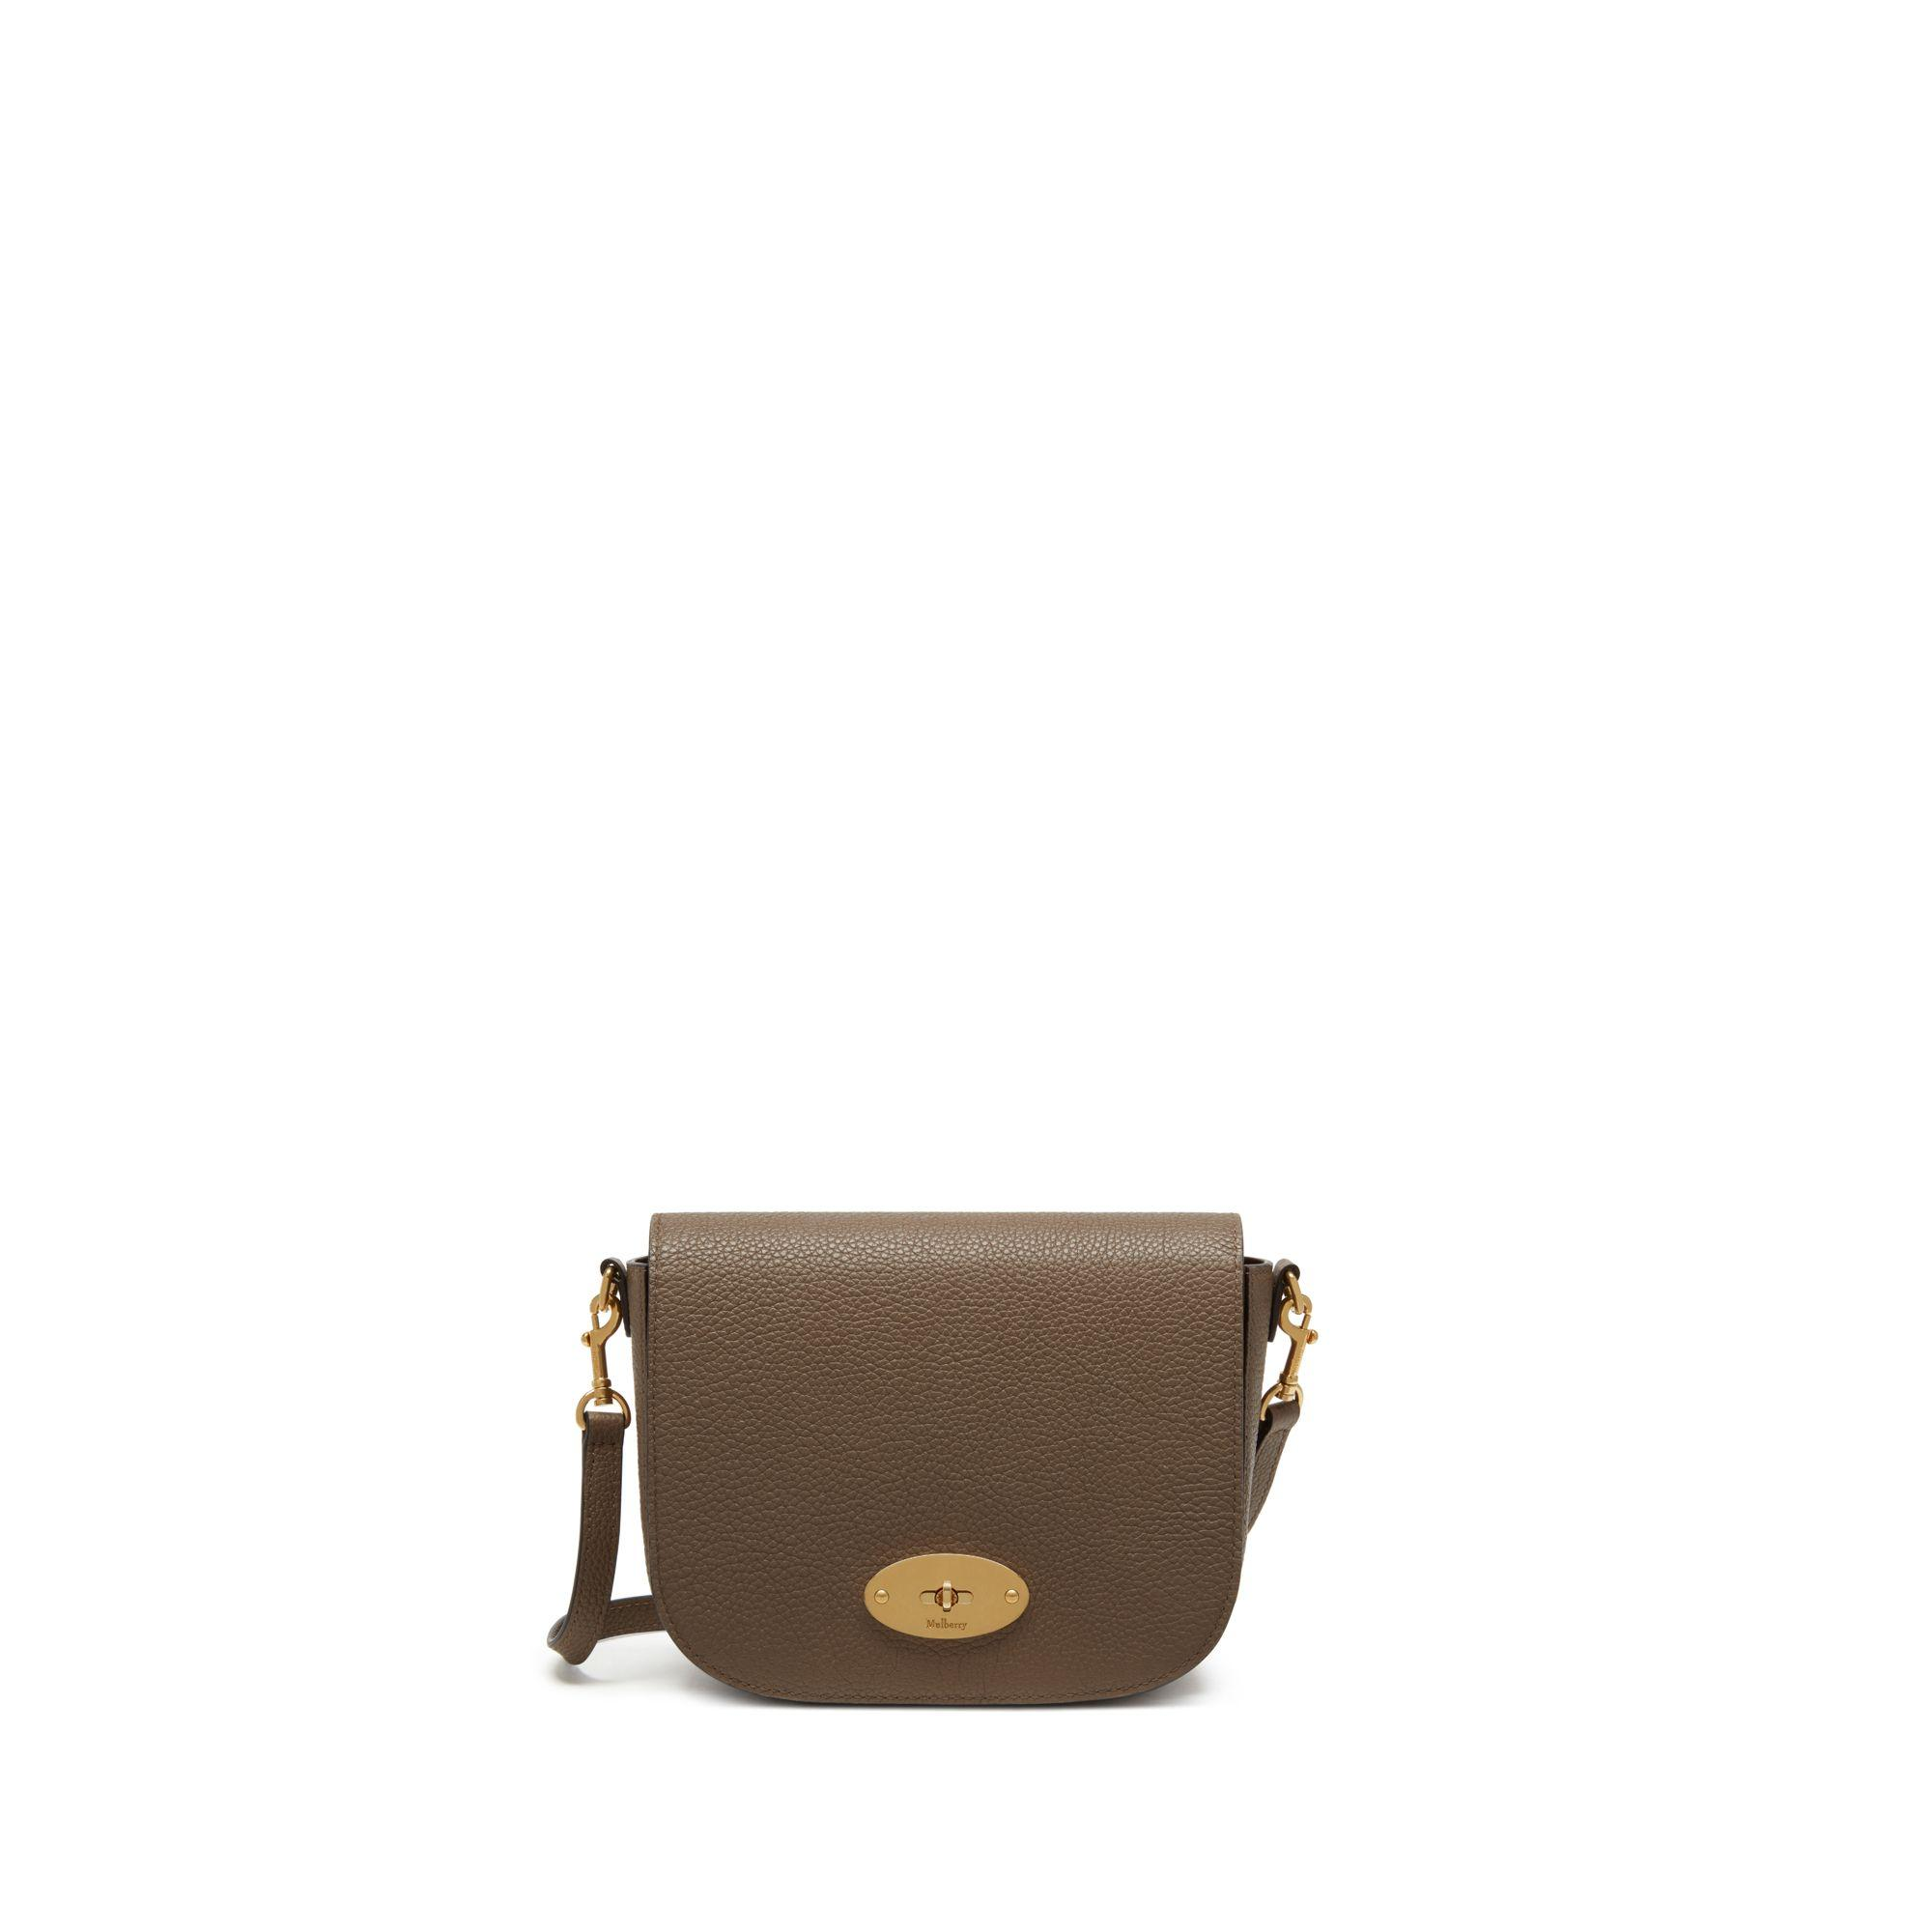 978675bc88 Mulberry Small Darley Satchel In Clay Small Classic Grain in Brown ...